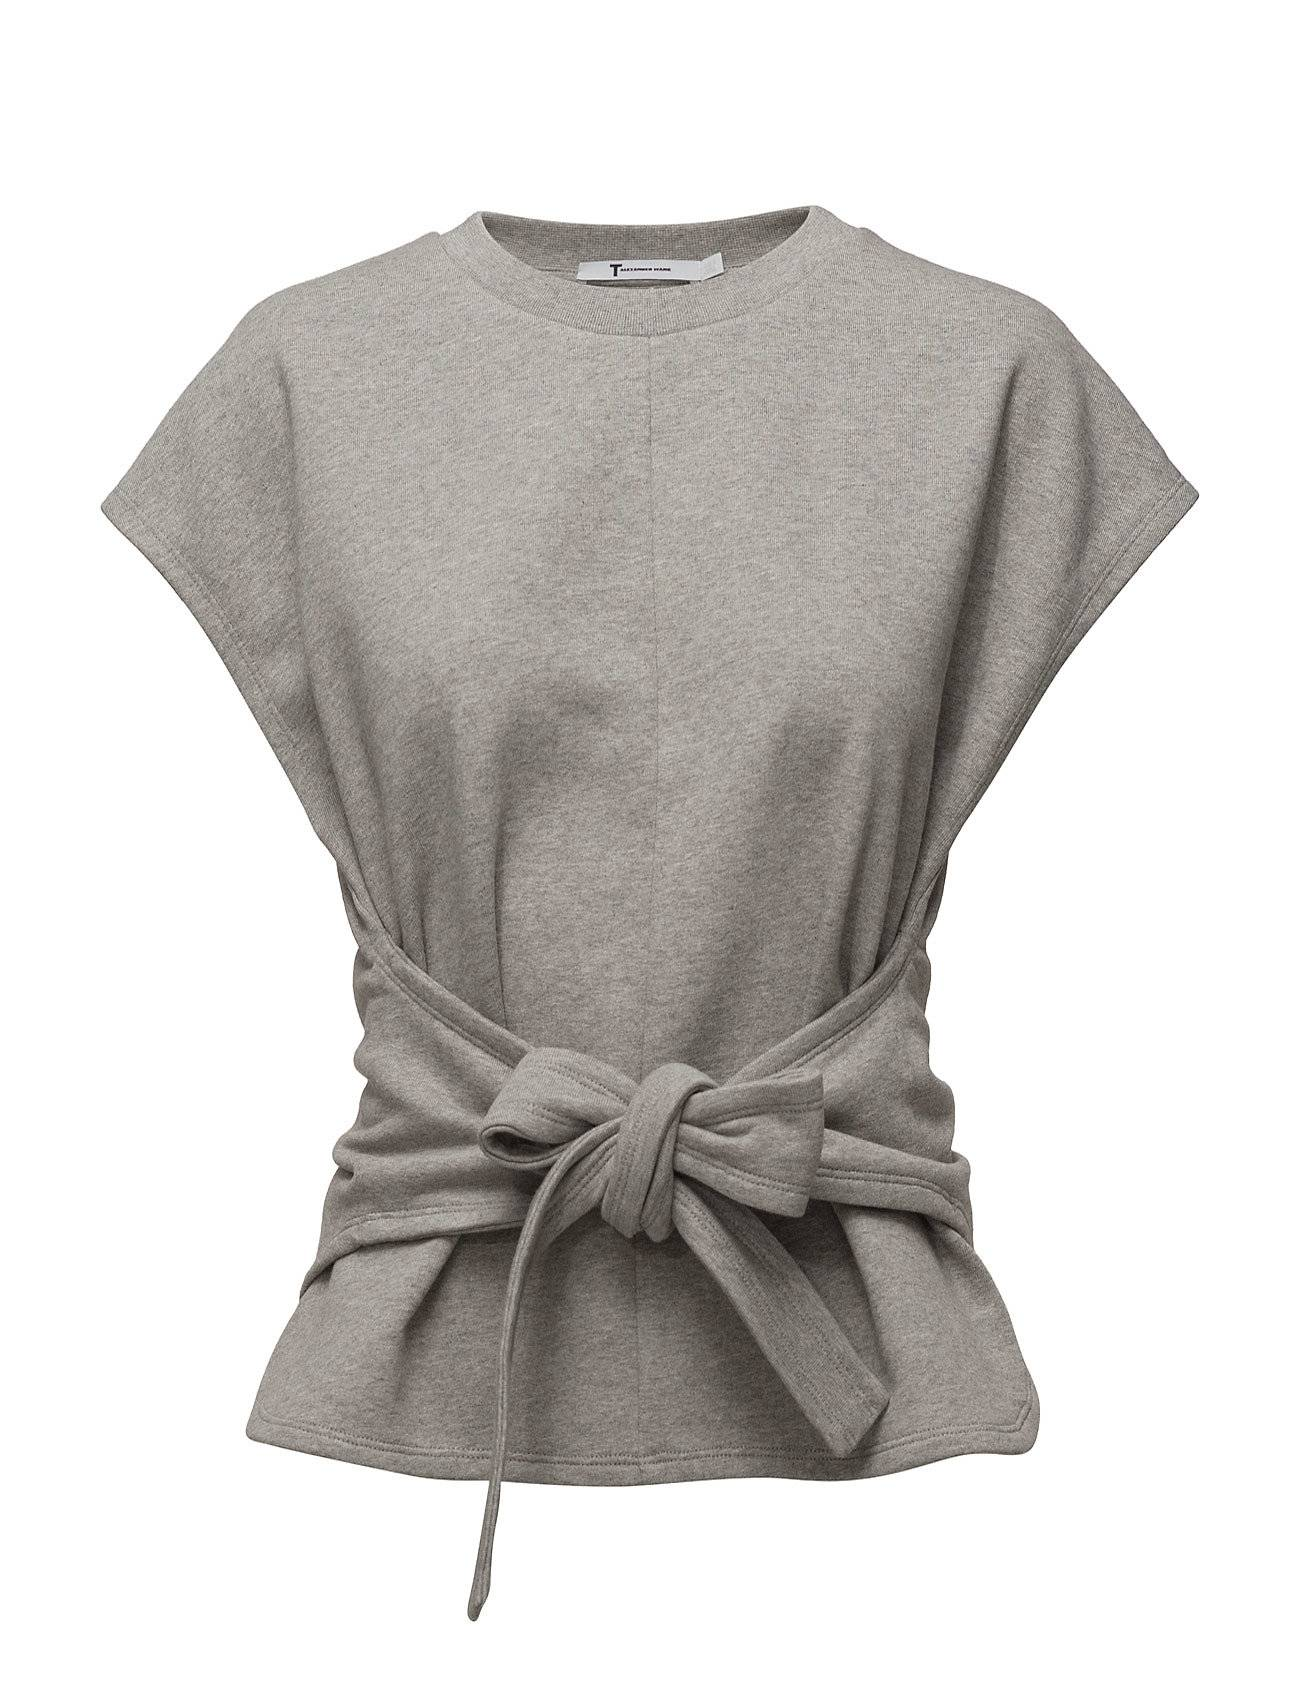 T by Alexander Wang S/S Wrap Front Top